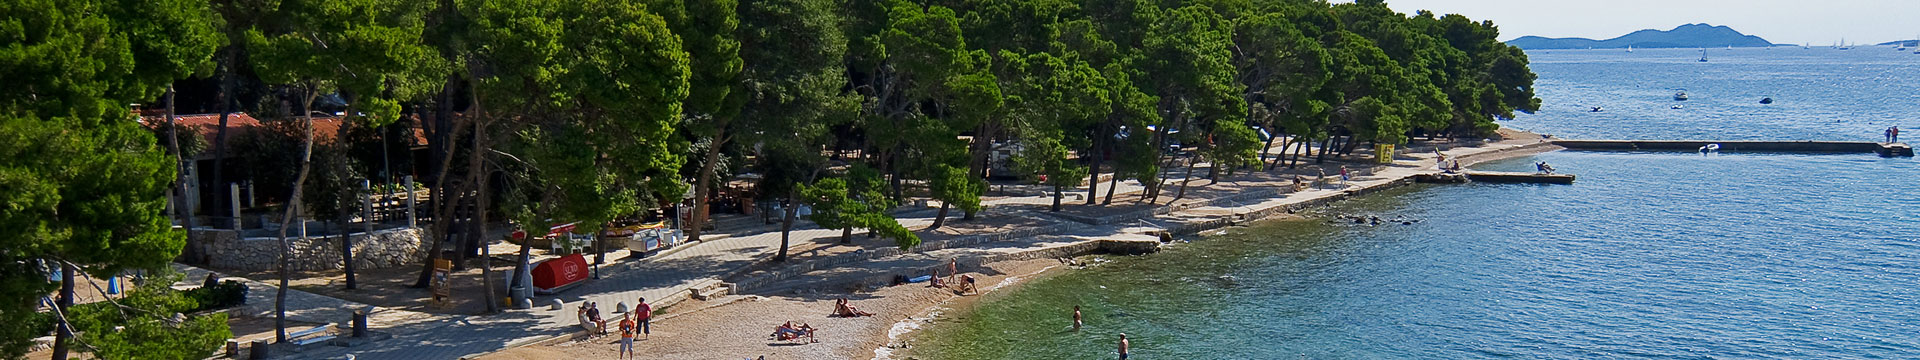 Camping on the Biograd na Moru | AdriaCamps